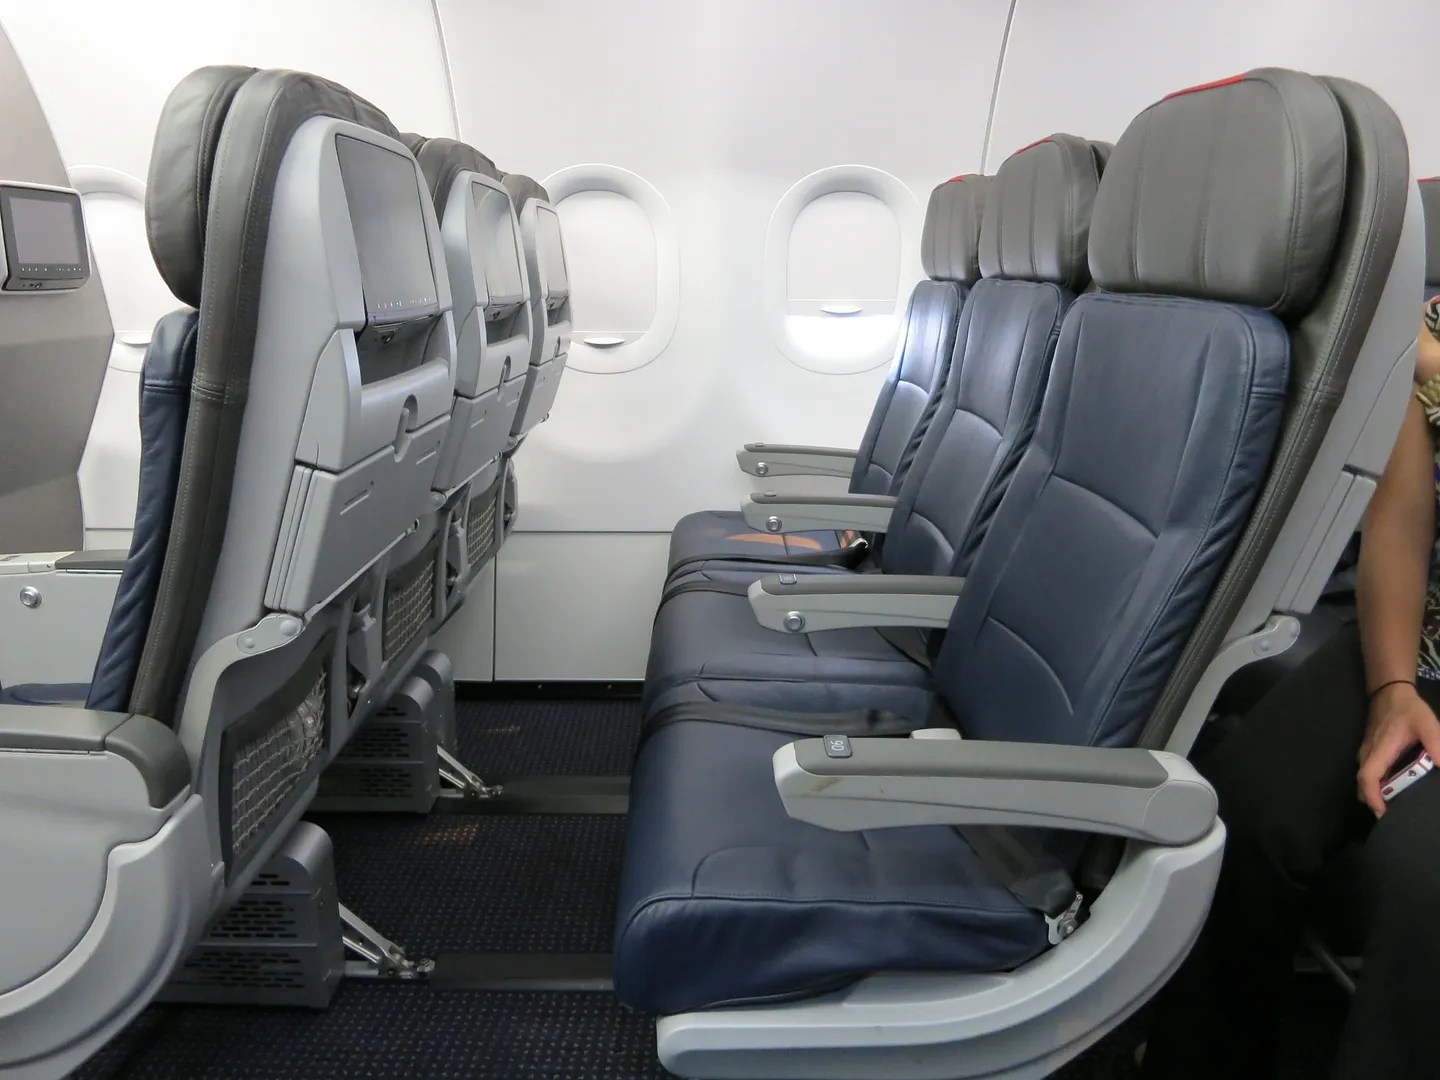 Us airways a319s will be getting new seats extra legroom starting american airlines a319 economy seats sciox Gallery